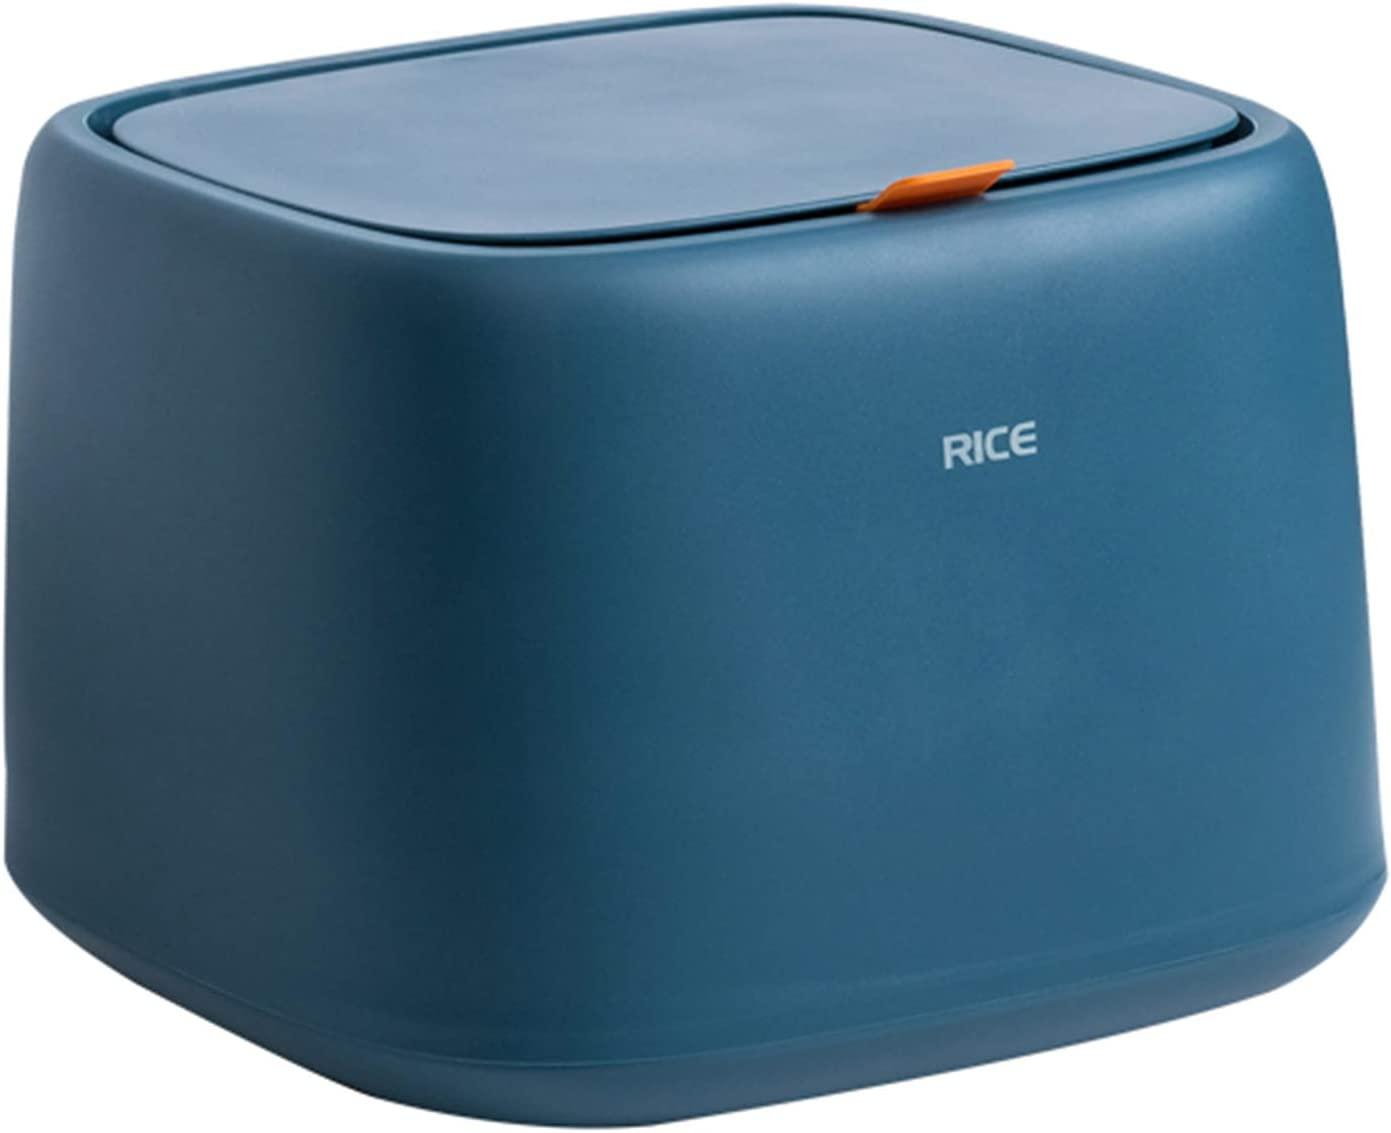 Rice Storage Container Dispenser 25lbs - Store up to 25lbs of Dry Food | Large Pet Food Storage Bin for Dogs and Cats | Includes measuring cup (Dark Blue)